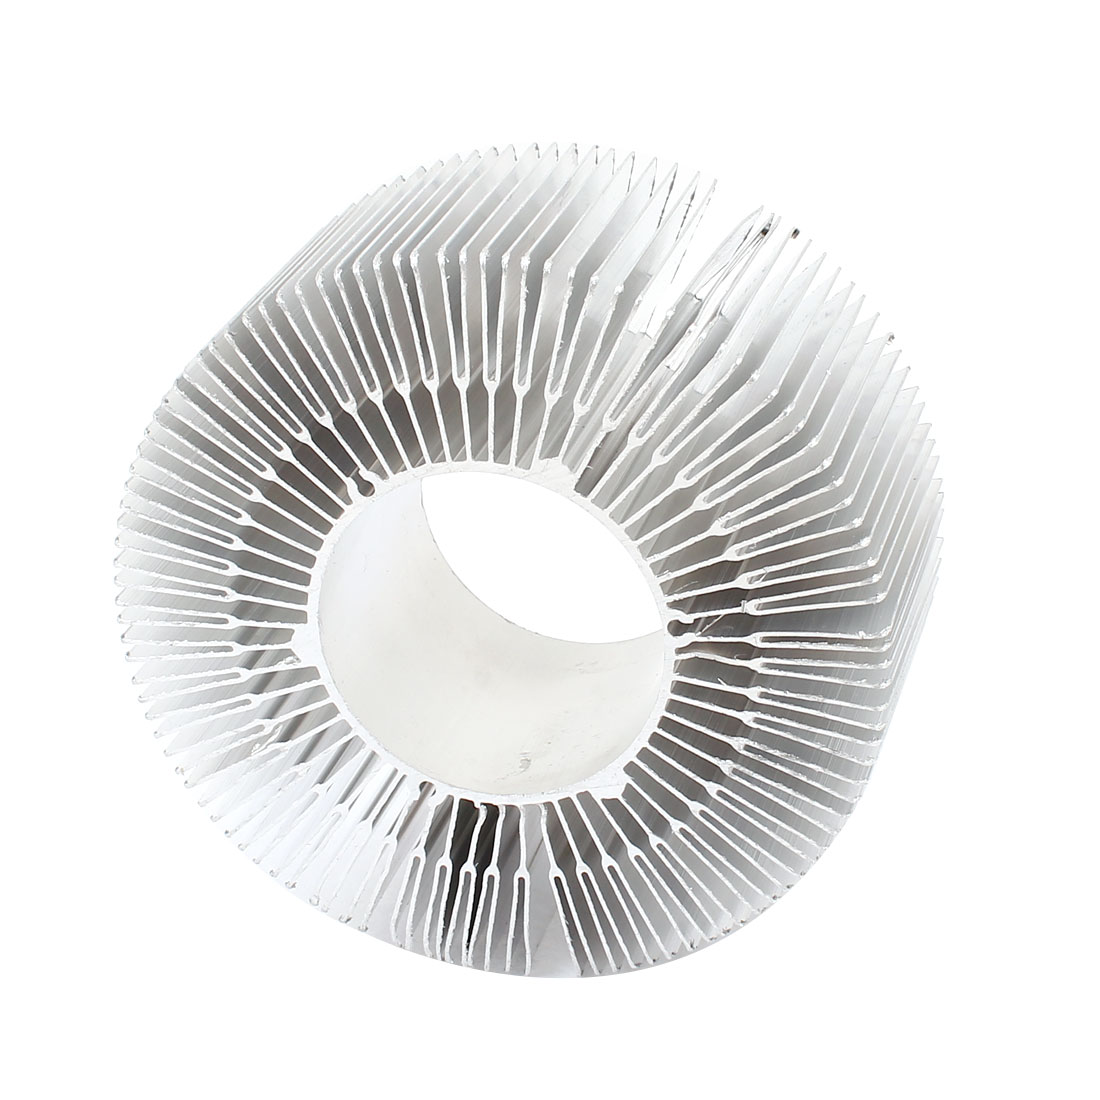 115mm x 50mm Cylinder 30W High Power LED Heatsink Aluminium Cooling Fin